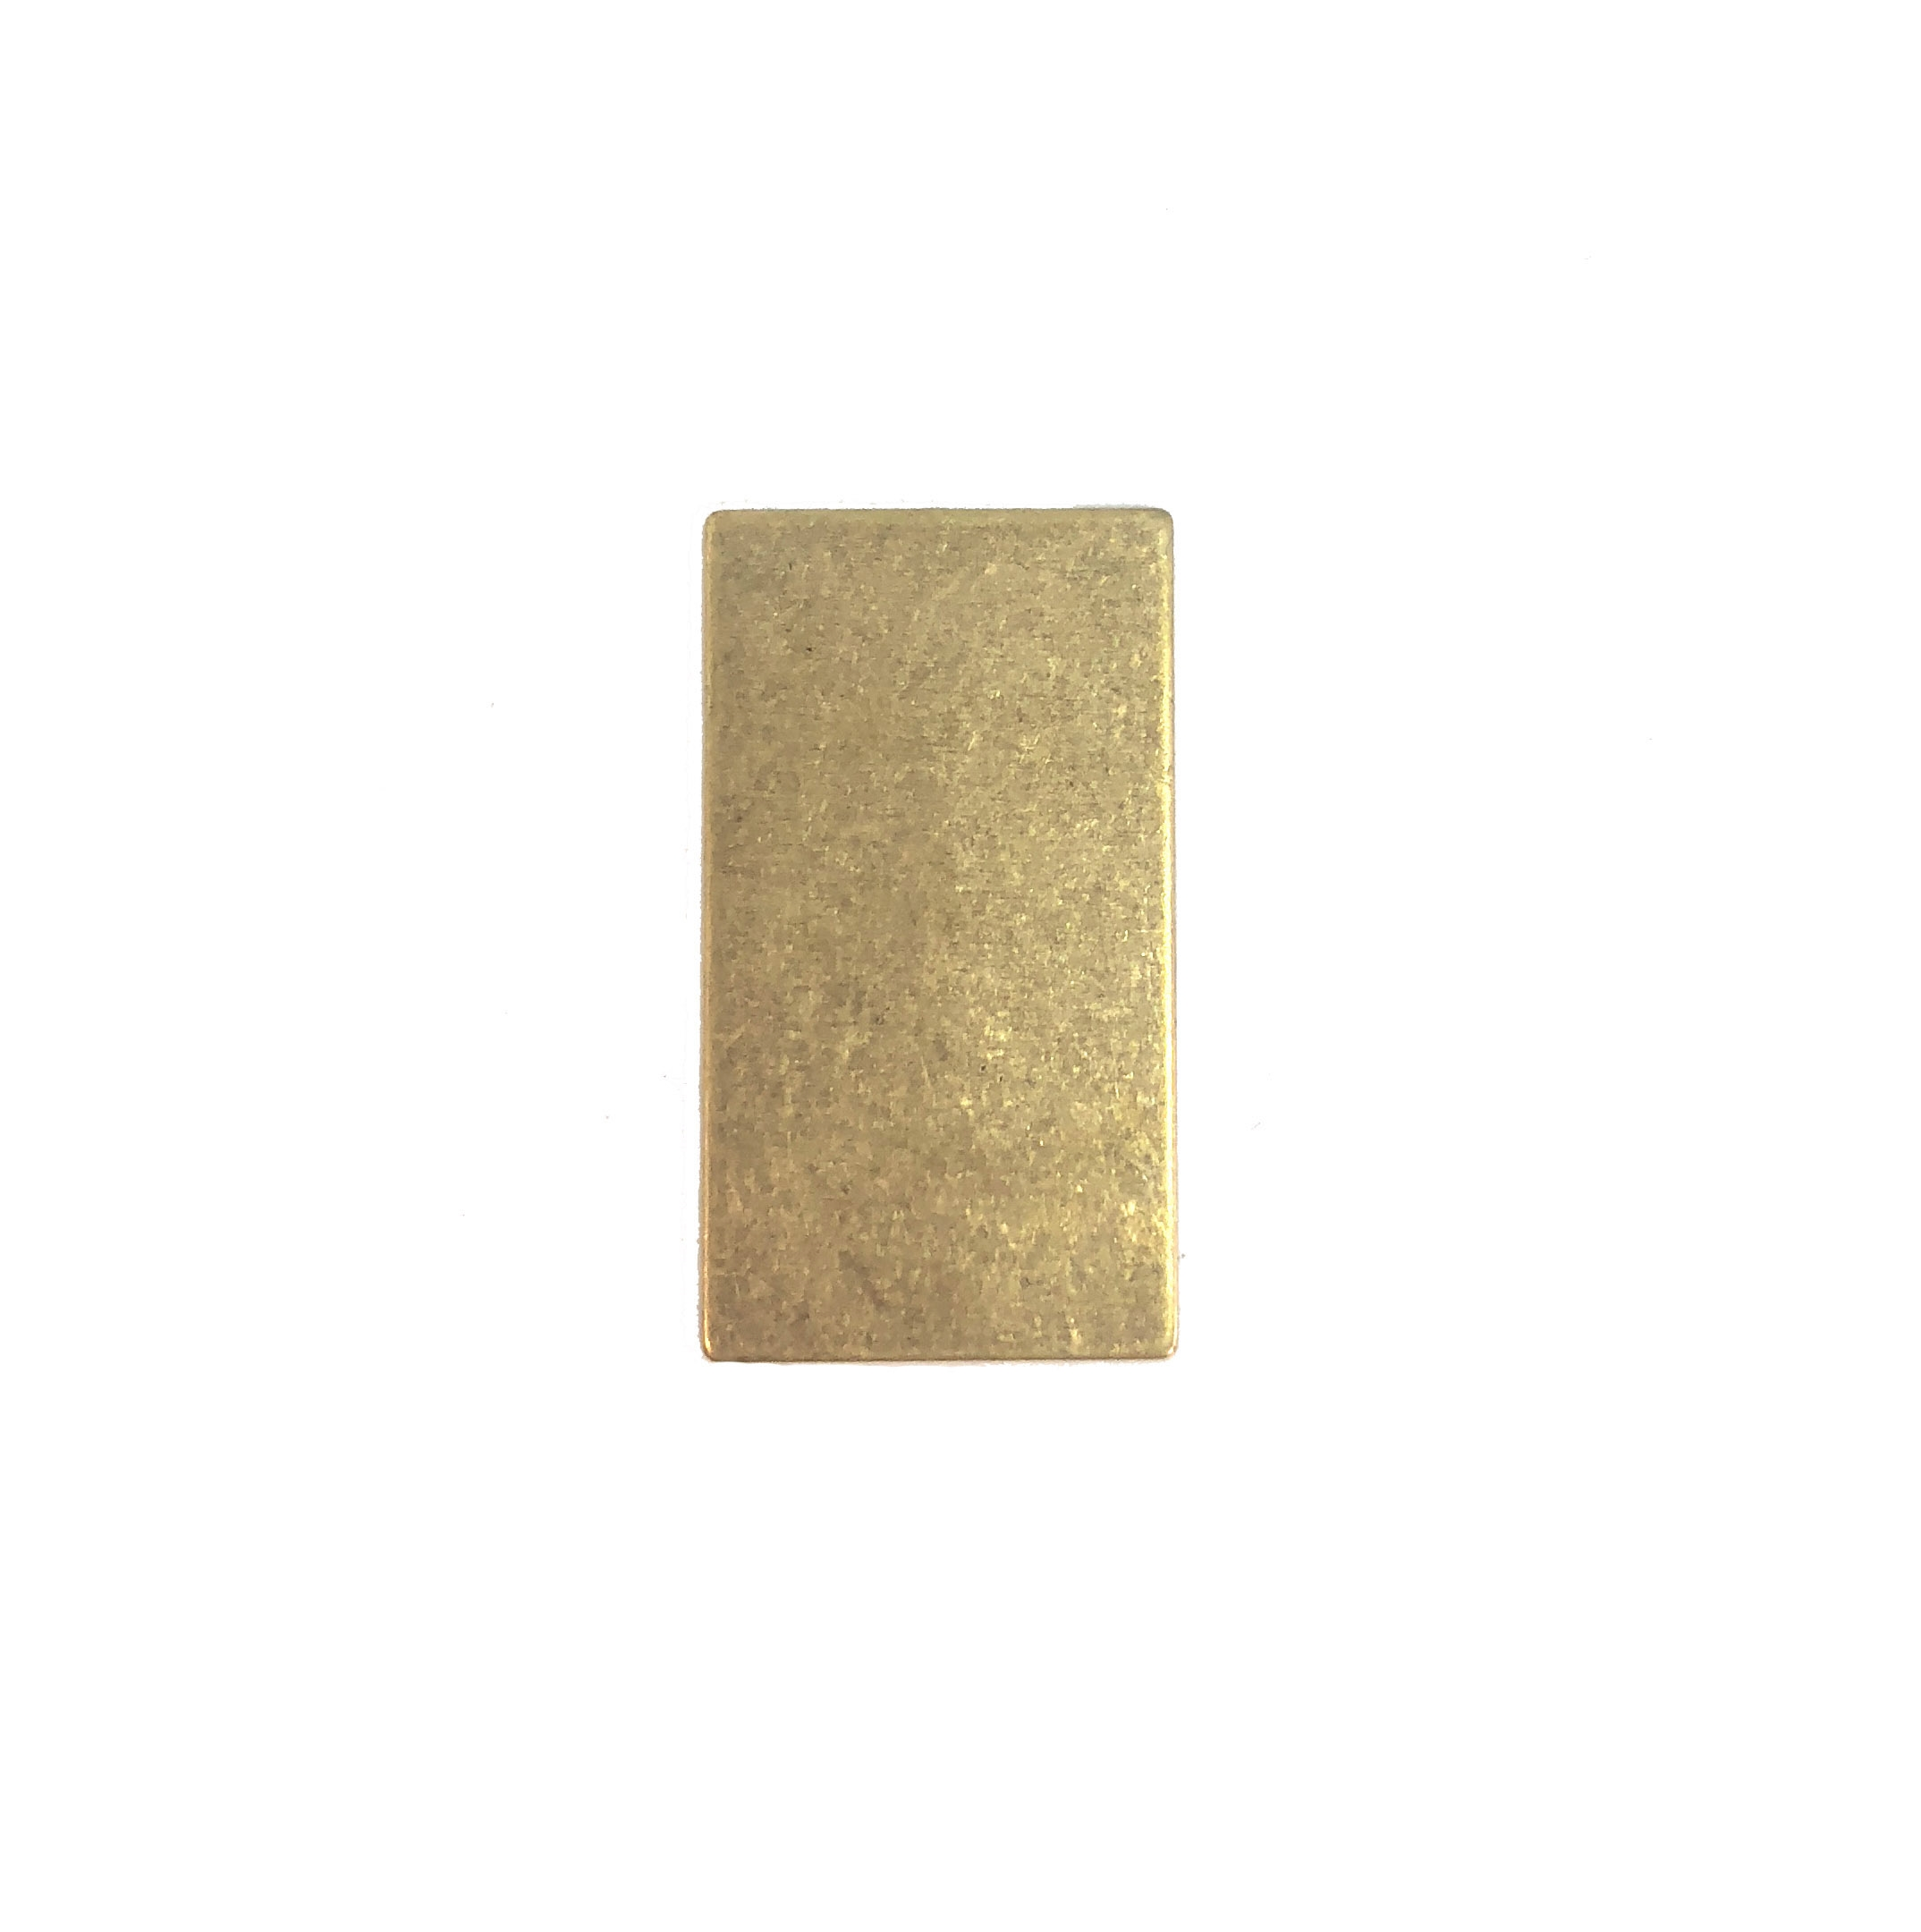 brass jewelry blank, rectangular blank, brass ox, 07734, B'sue Boutiques, nickel free jewelry, US made jewelry, vintage jewellery supplies, jewelry making supplies, antique brass,